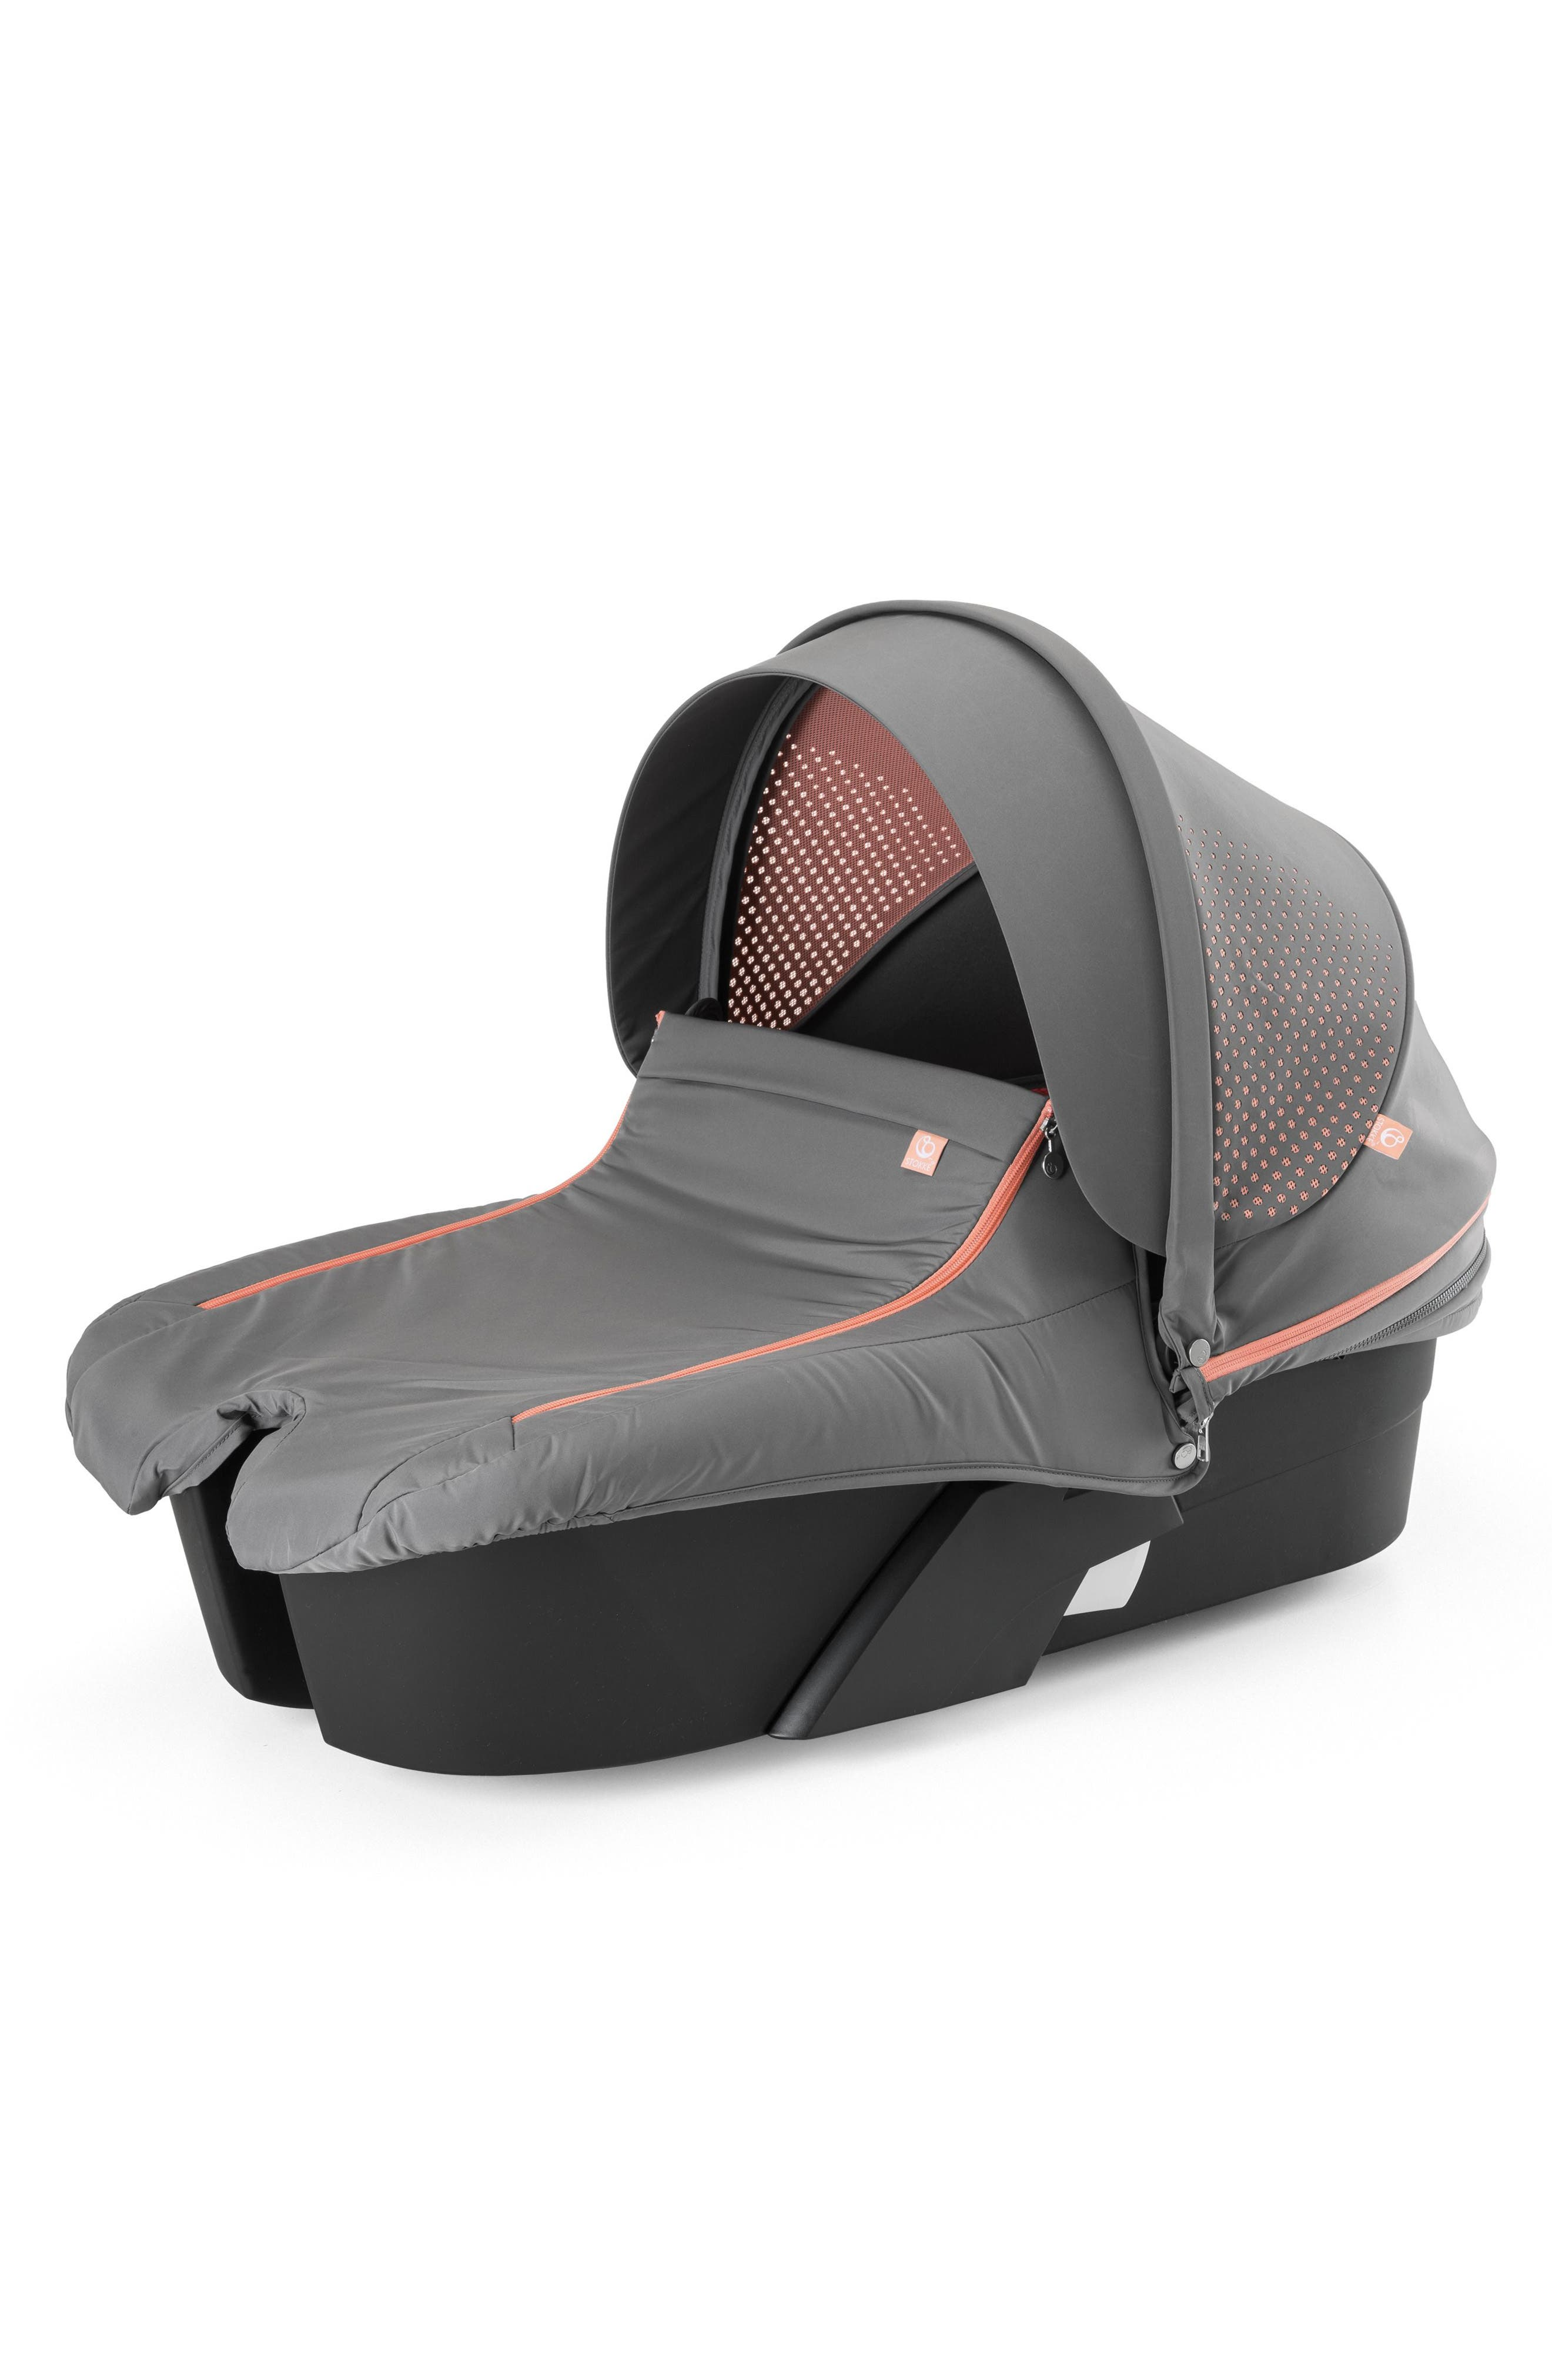 Xplory<sup>®</sup> Athleisure Stroller Carry Cot,                         Main,                         color, 950